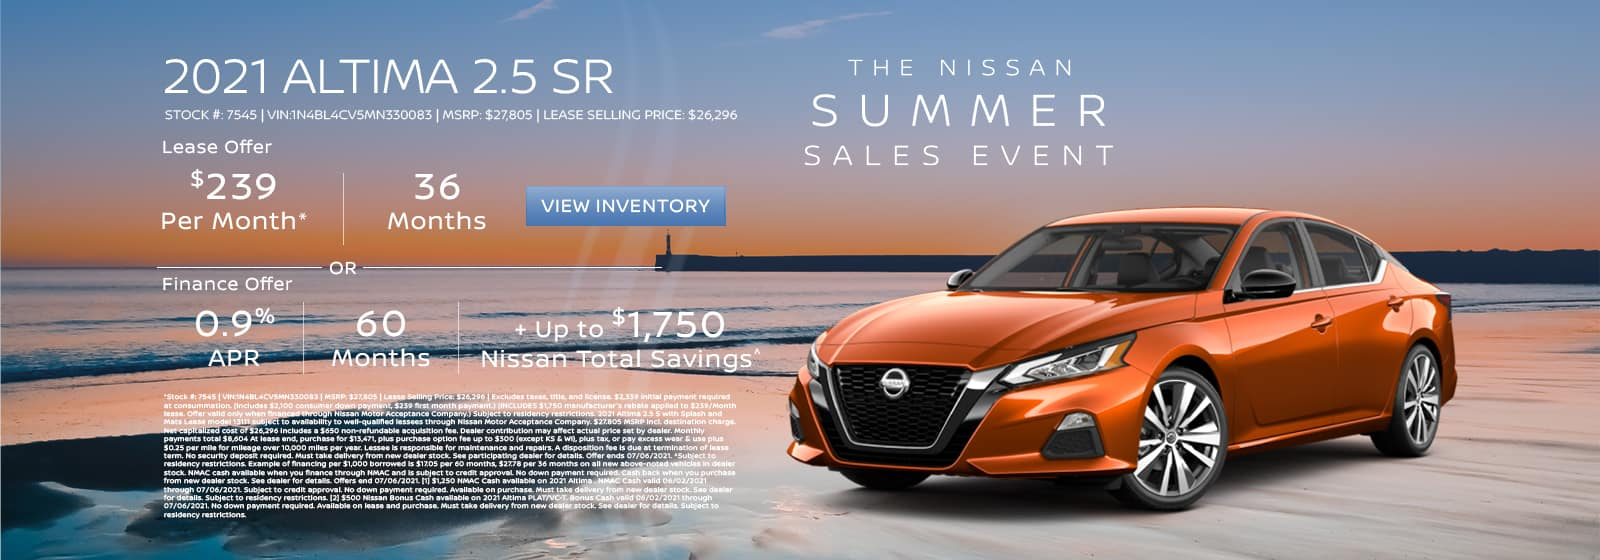 Lease a new 2021 Altima for $239 per month for 36 months.